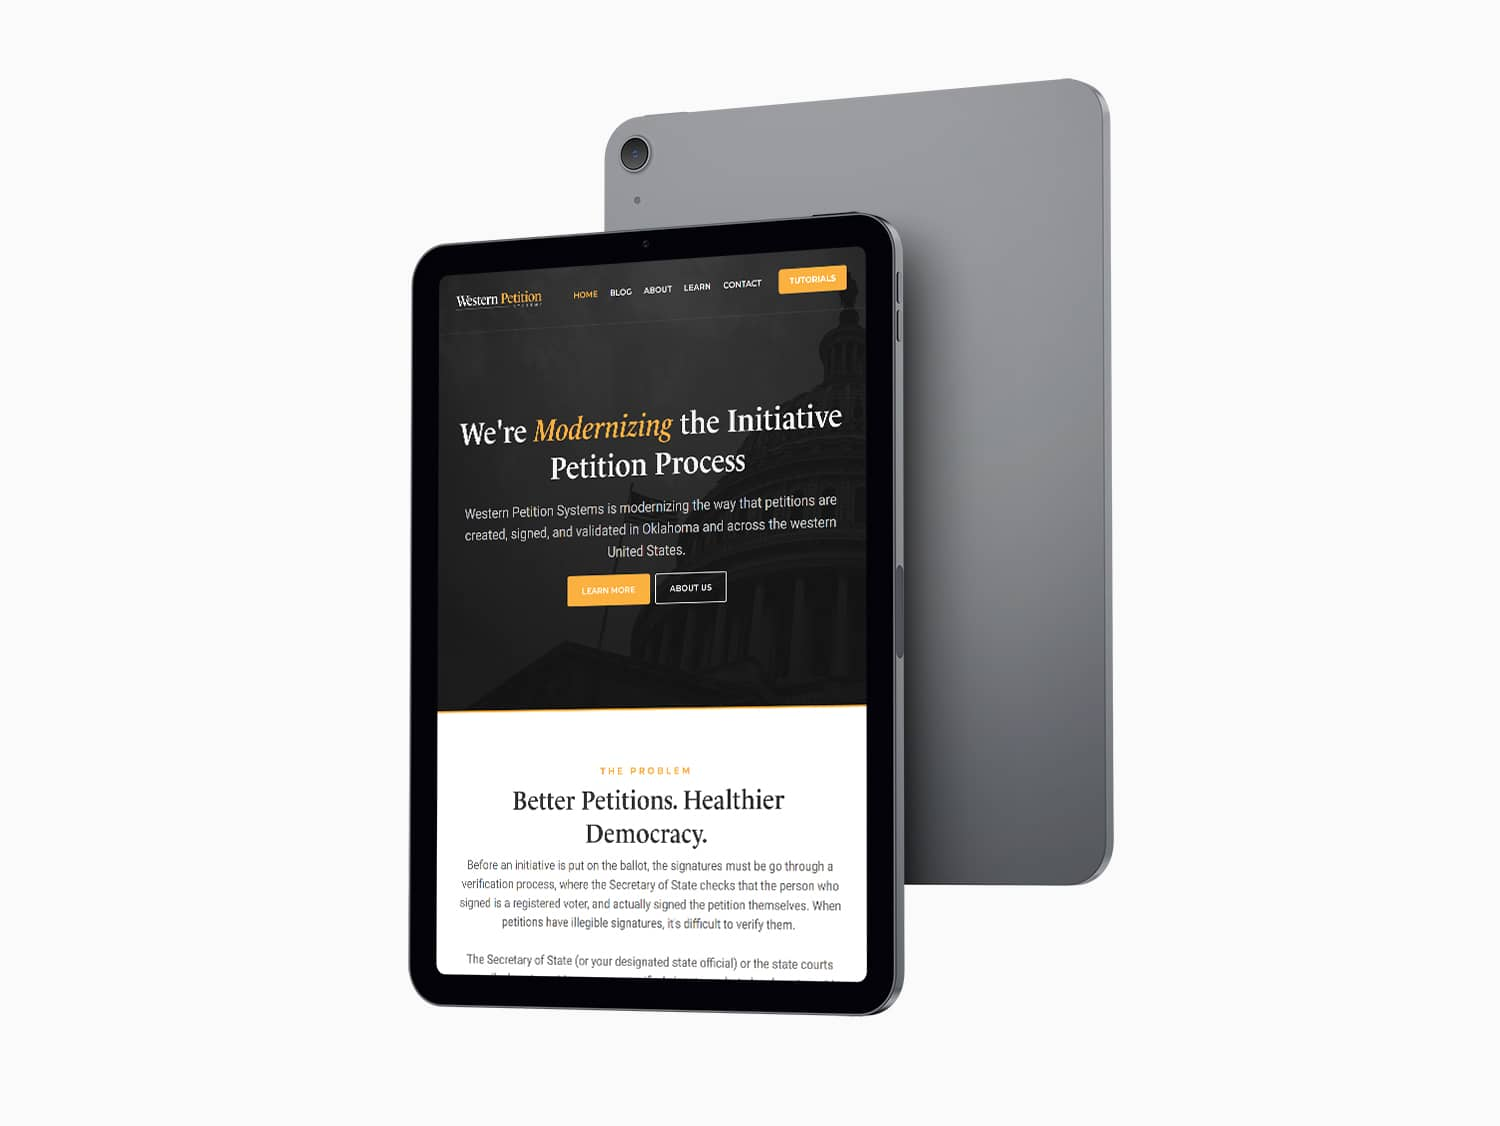 Western Petition Systems Website on iPad